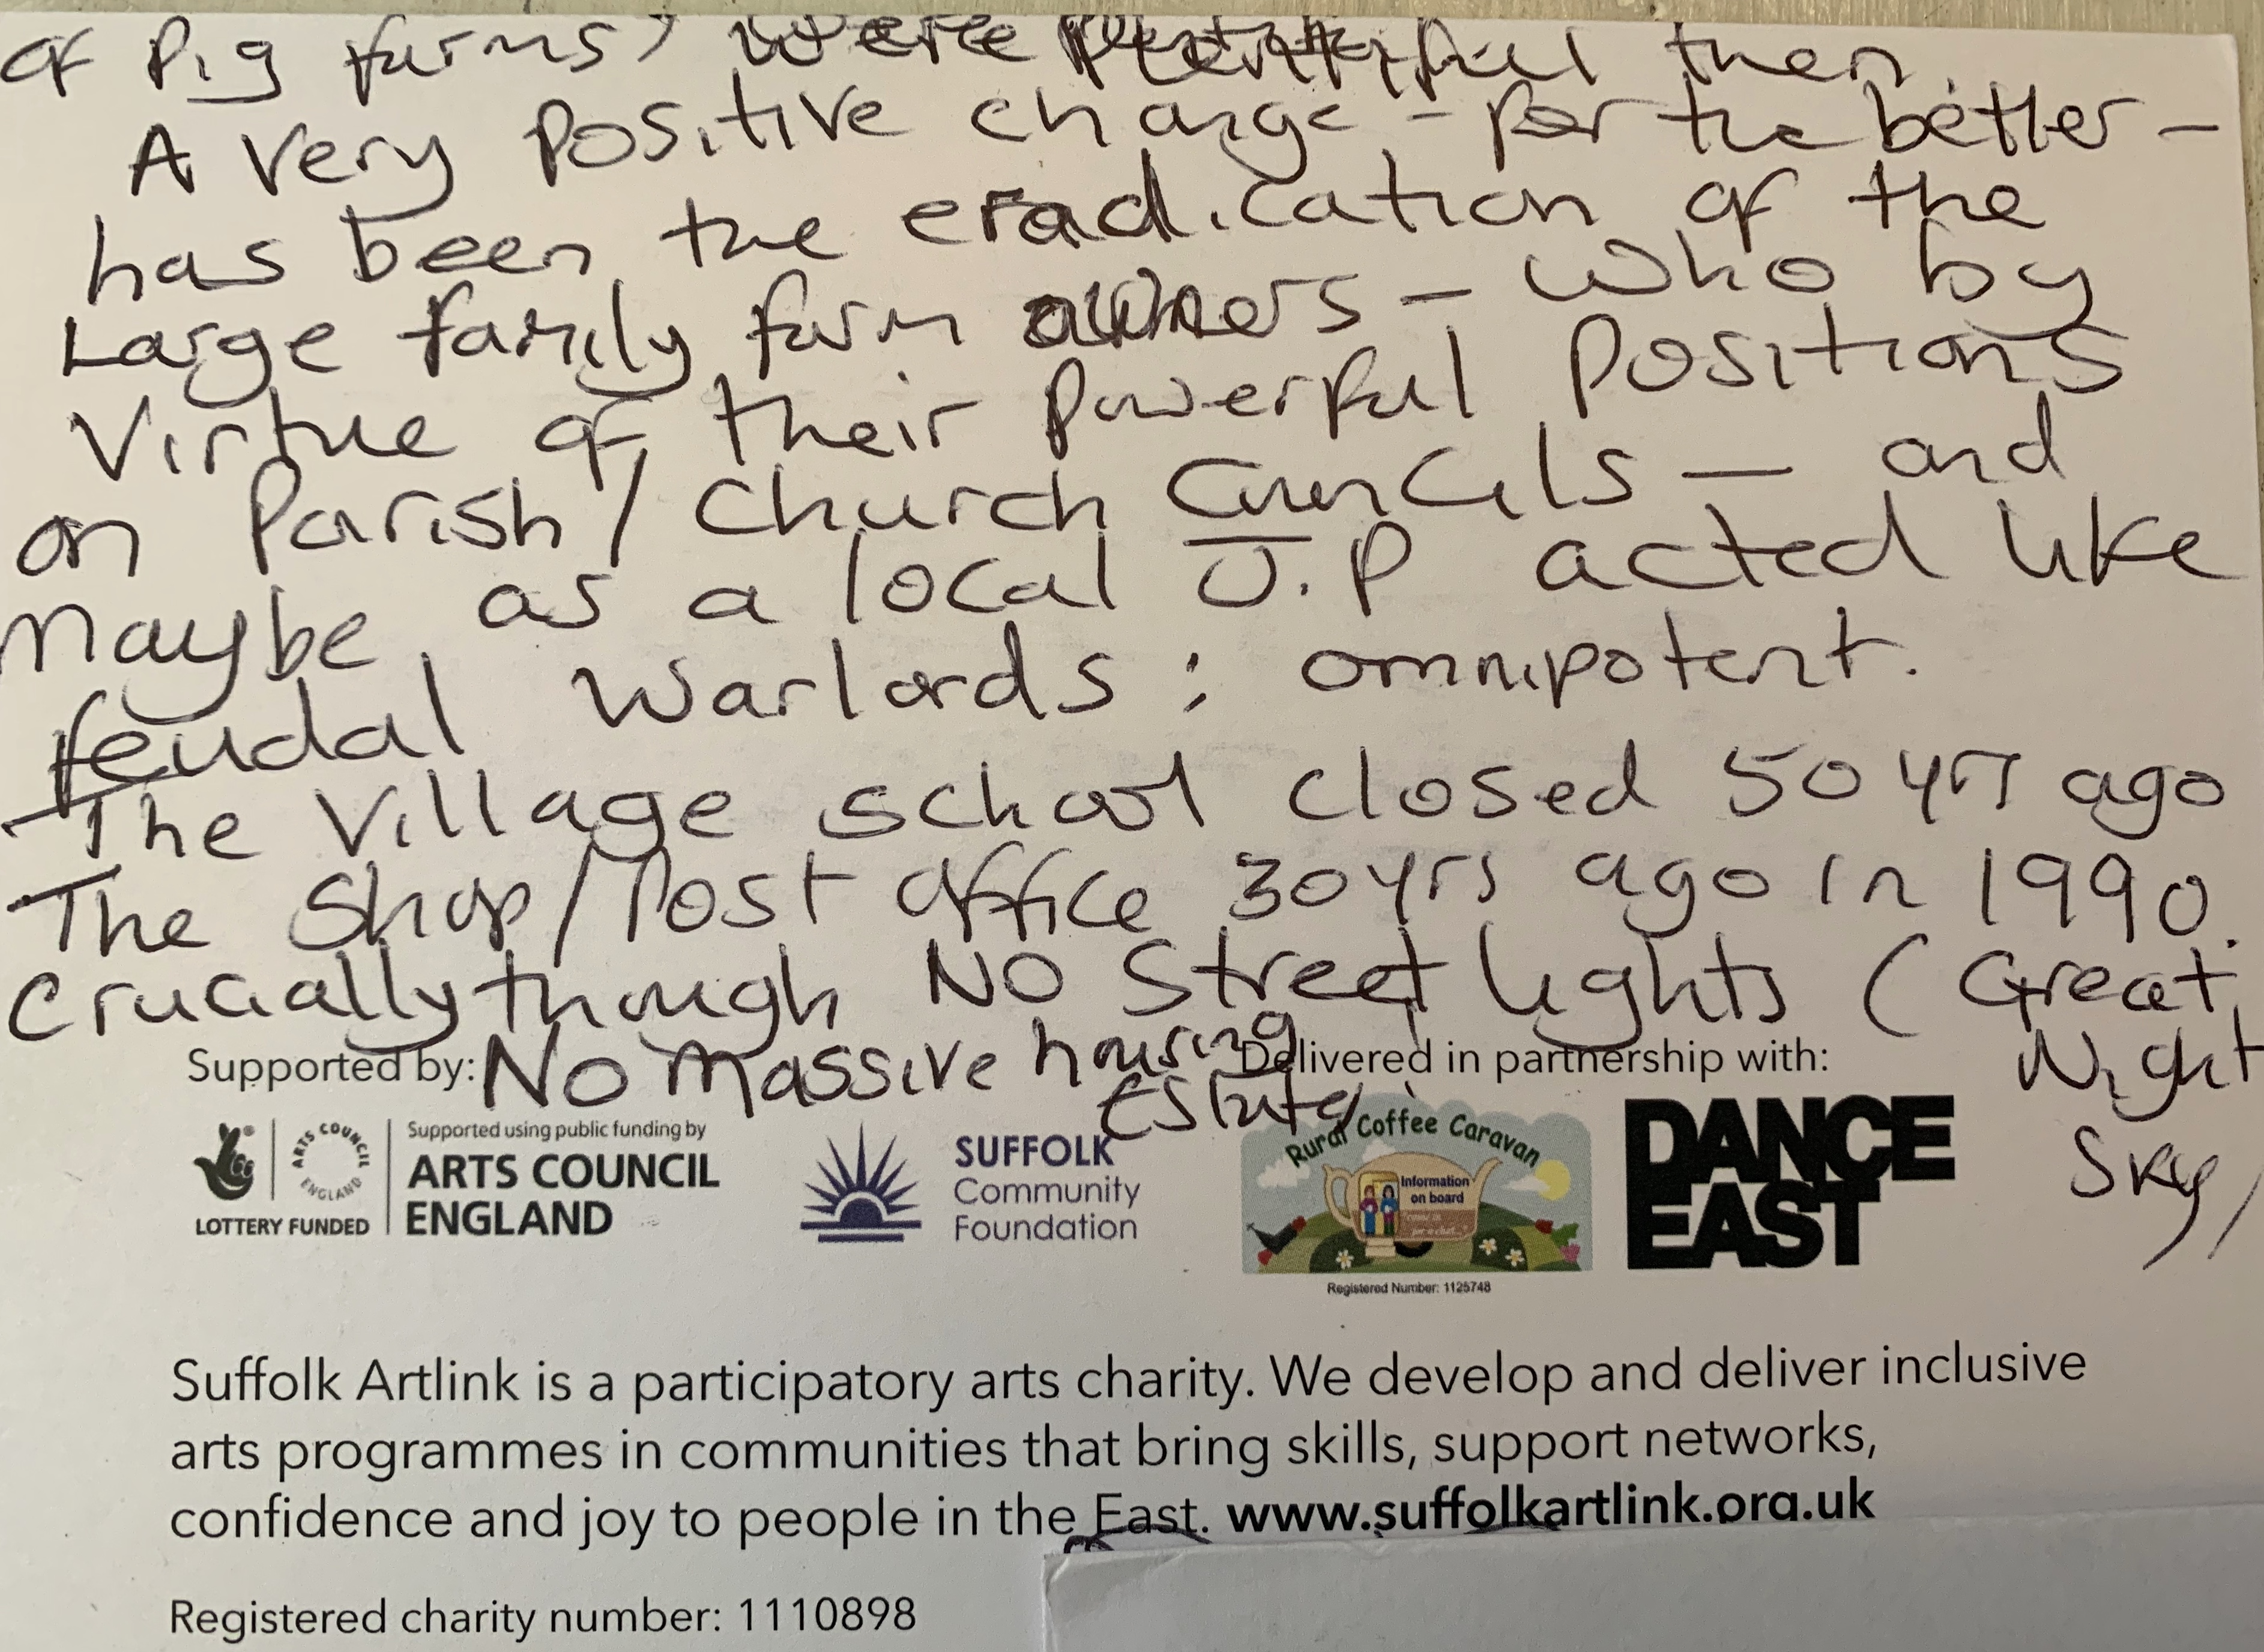 The reverse of previous postcard, in which the writer says that one positive change has been the eradication of large family farm owners who, in previous years, had become very powerful.